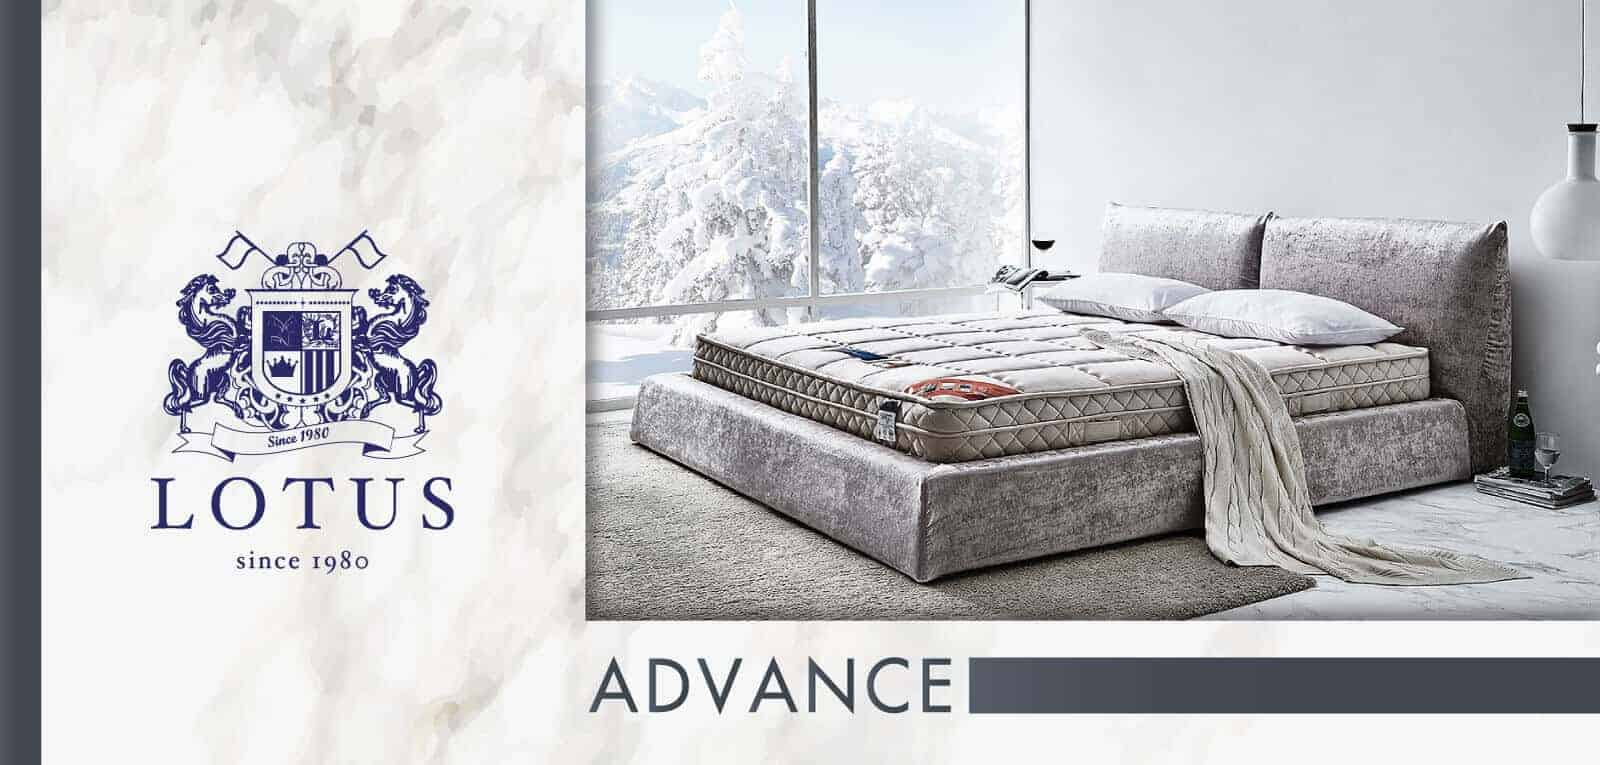 Lotus Mattress - Advance 9